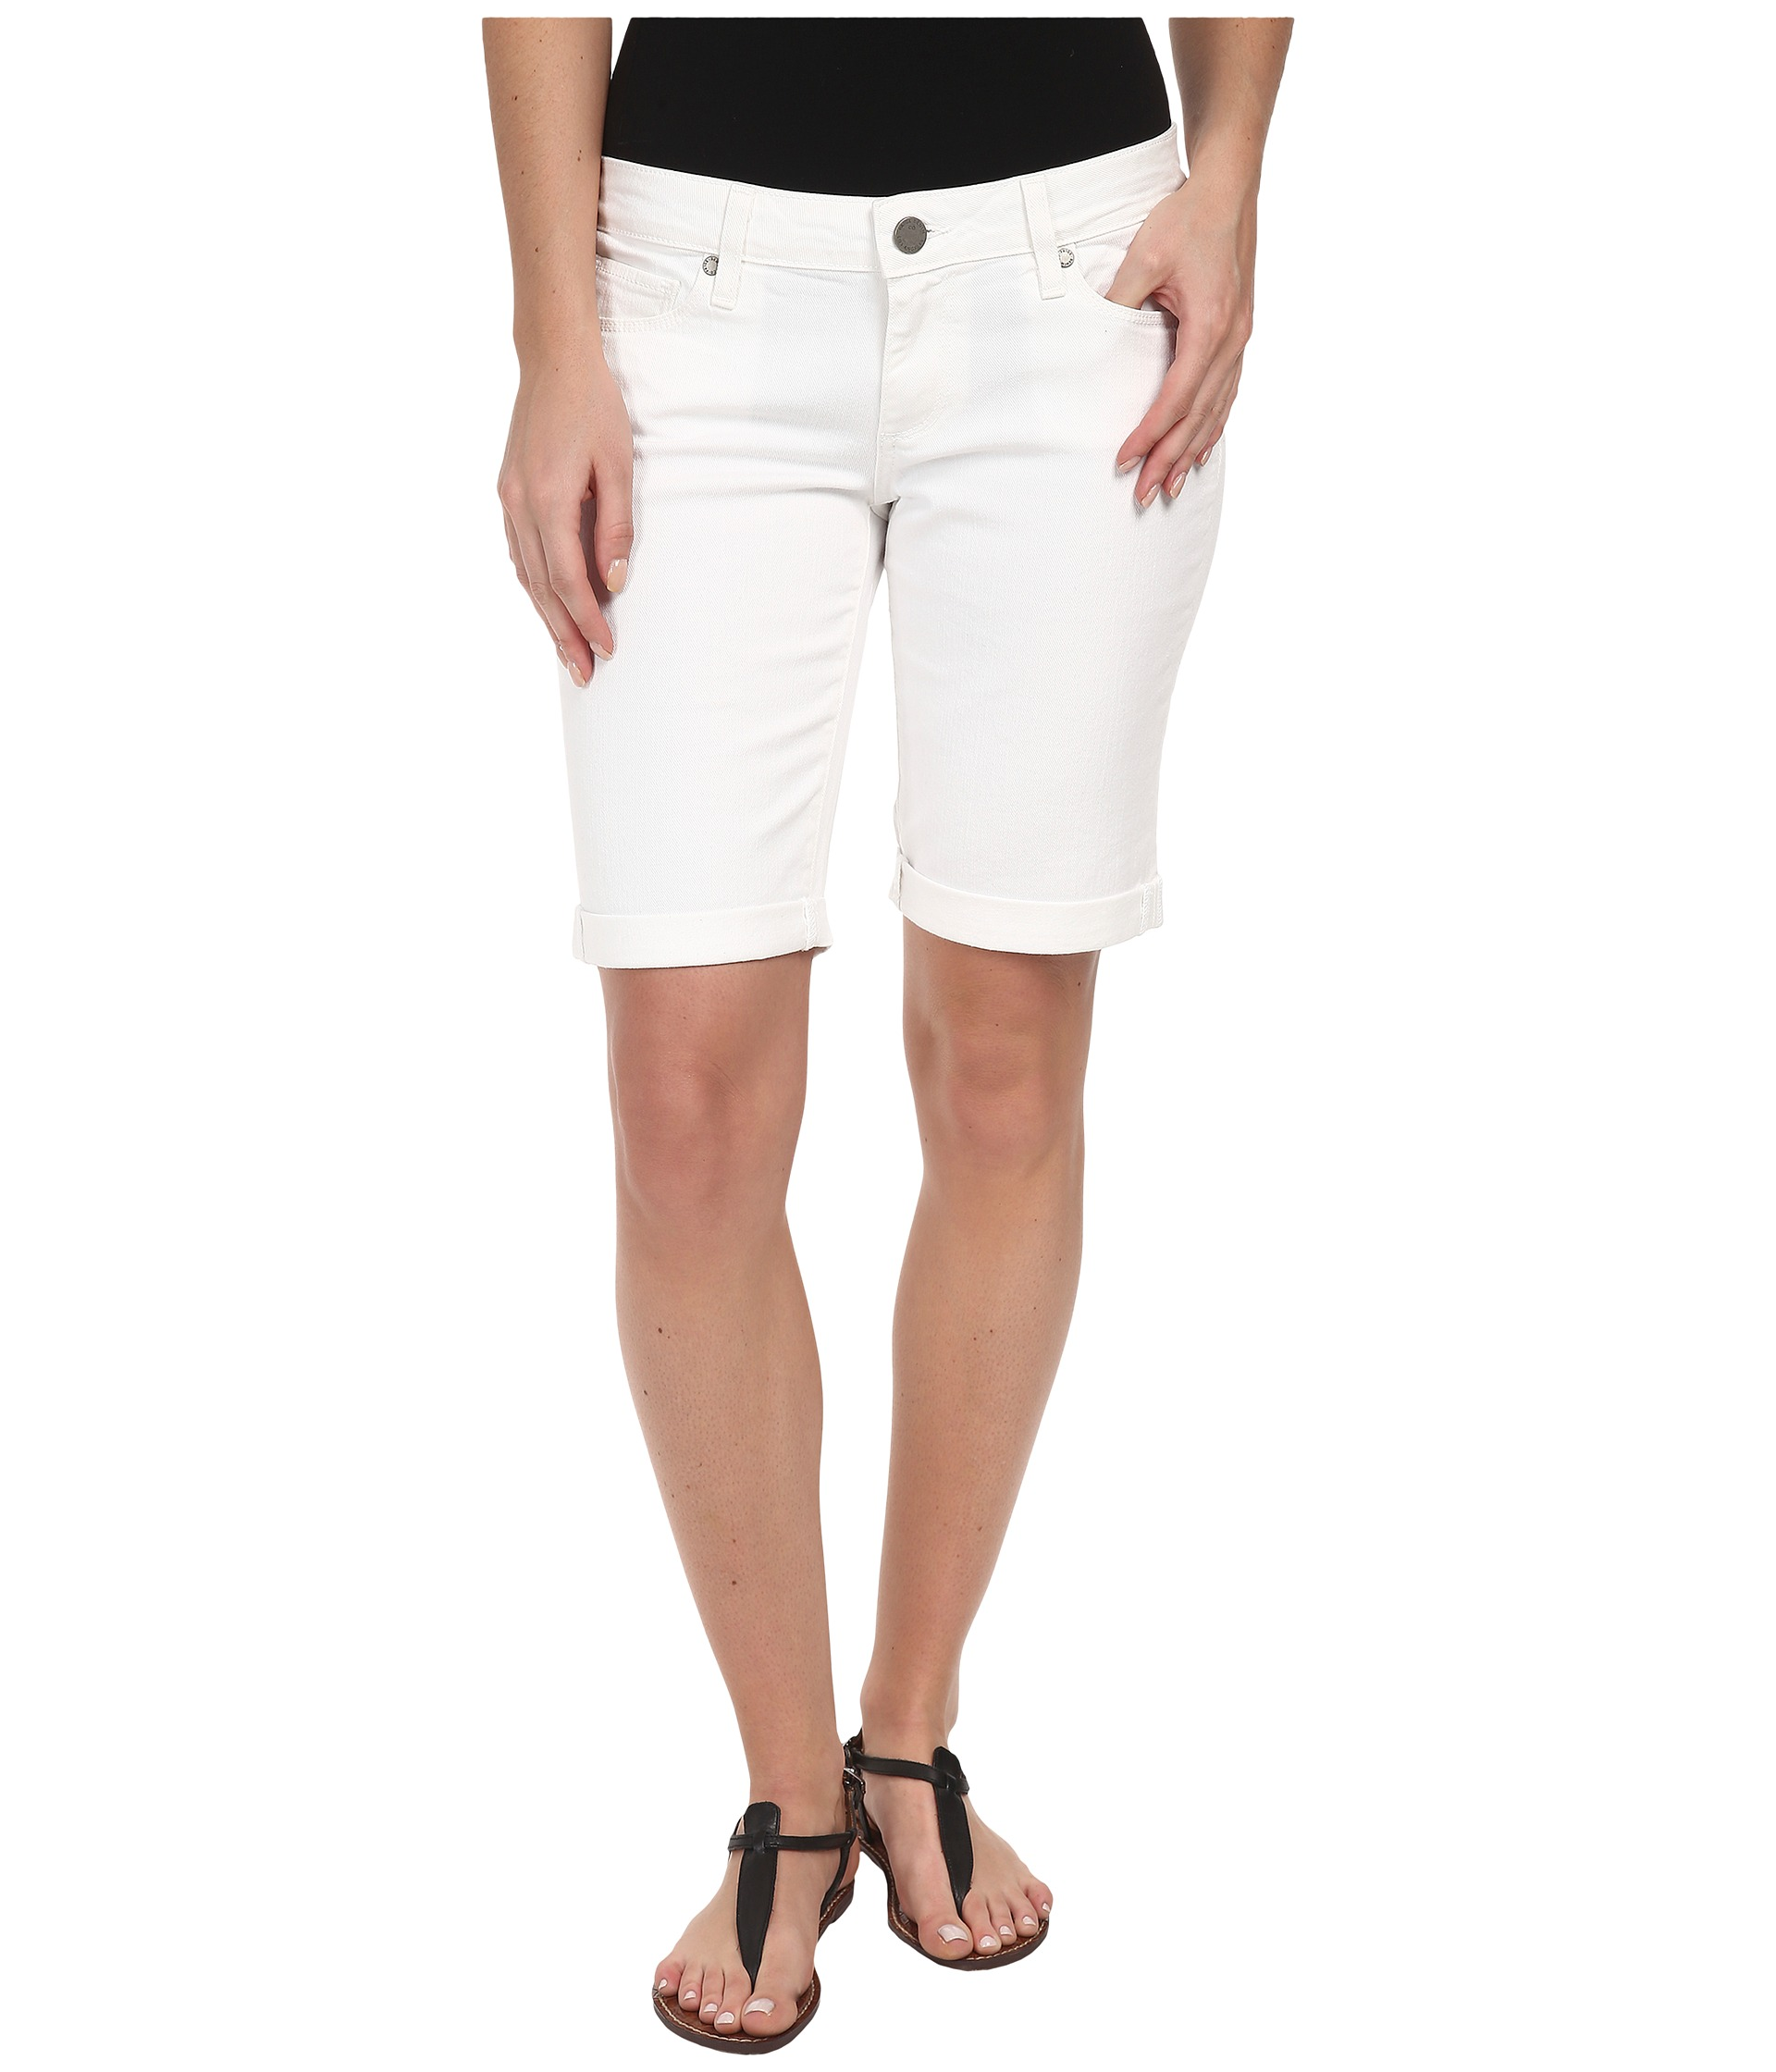 Paige Jax Knee Short in Optic White at Zappos.com